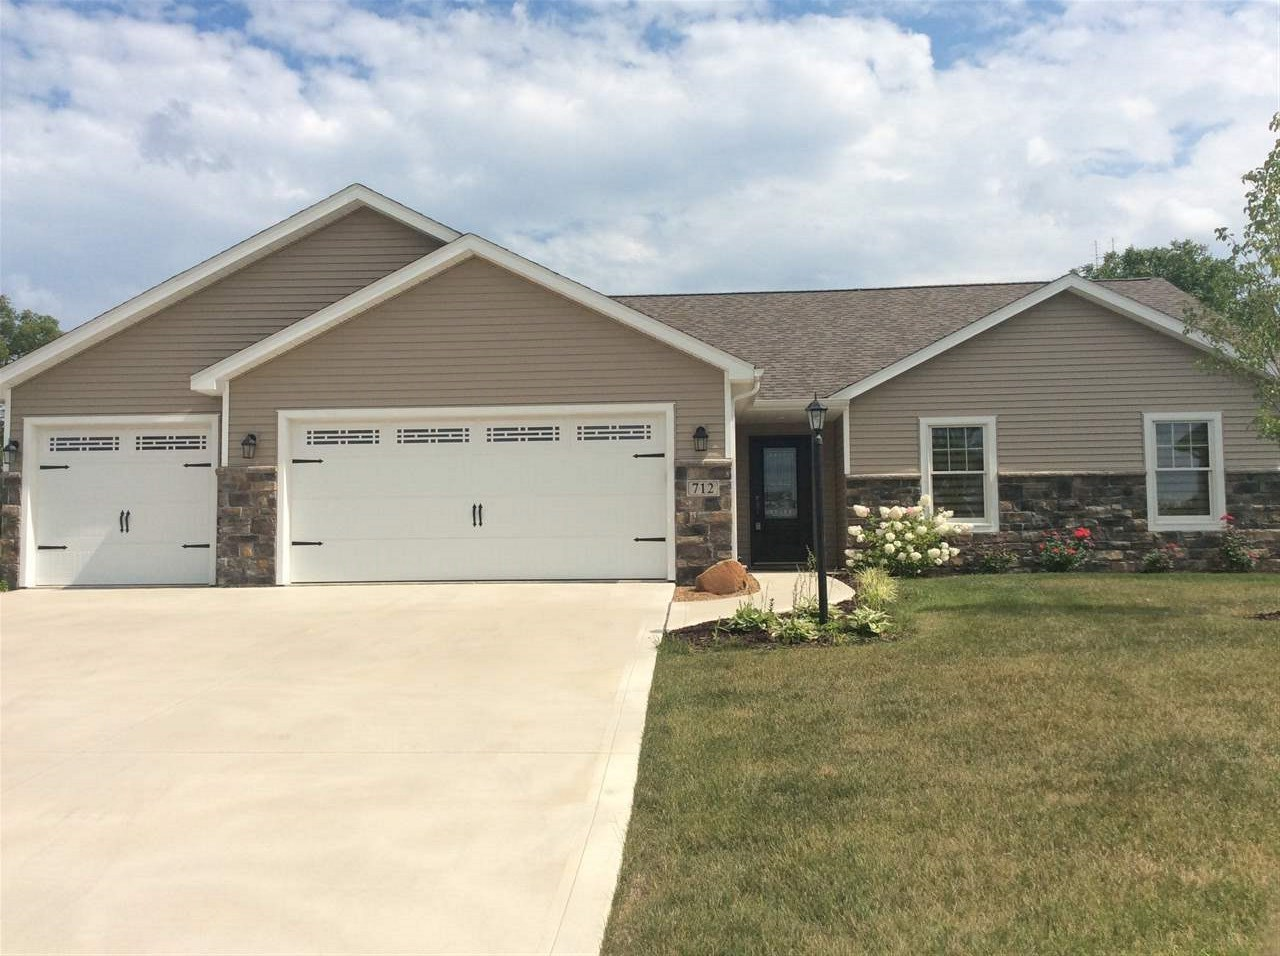 712 Bailey Court, Angola, IN 46703